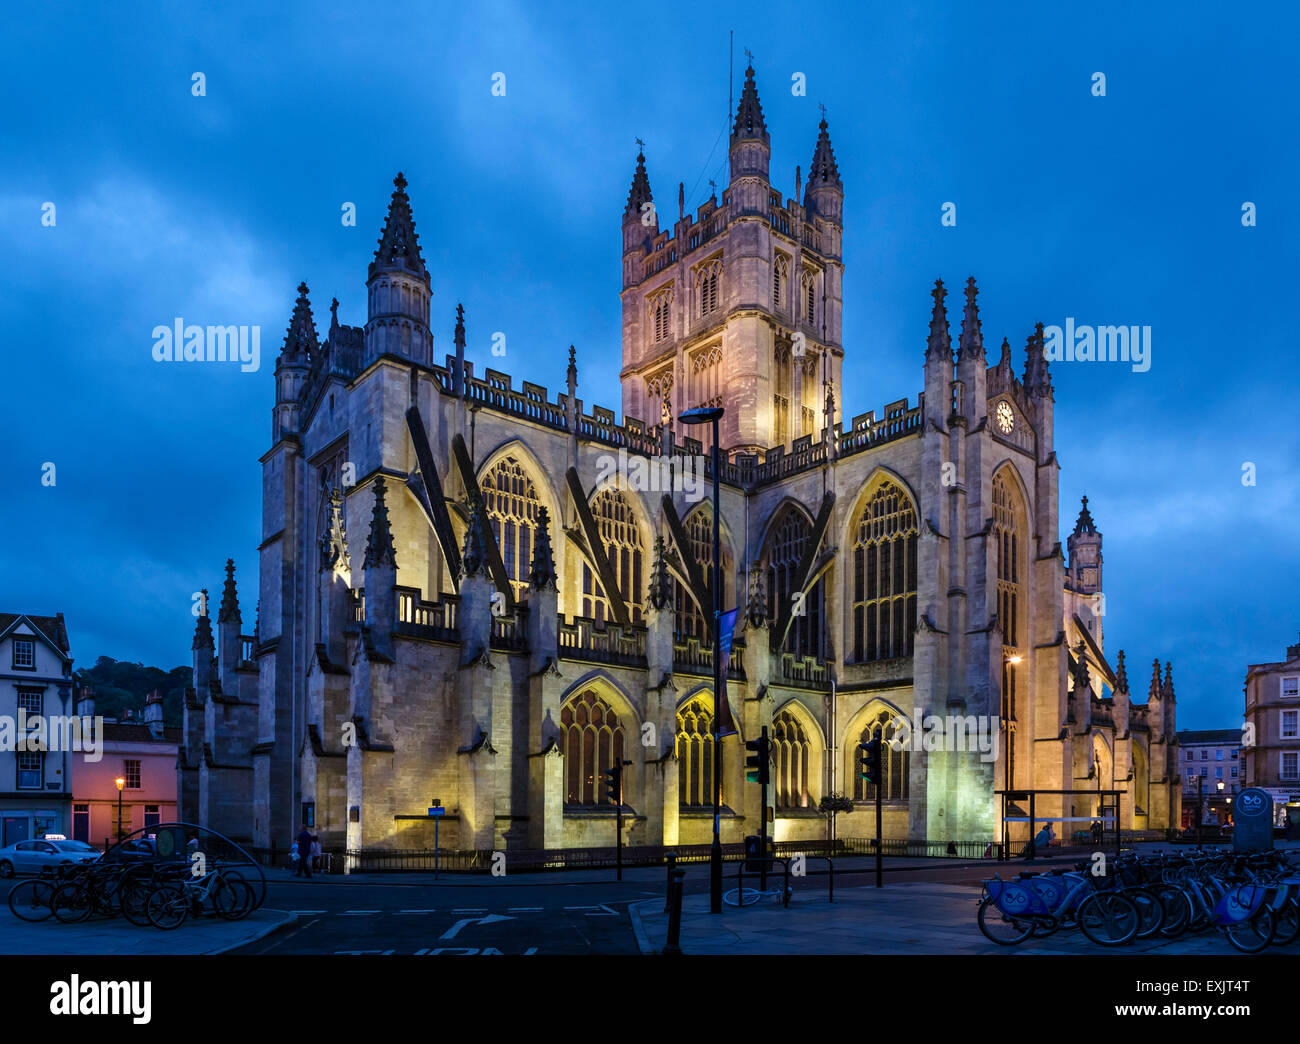 The Northern facade of Bath Abbey at night, Bath, Somerset, England, UK - Stock Image